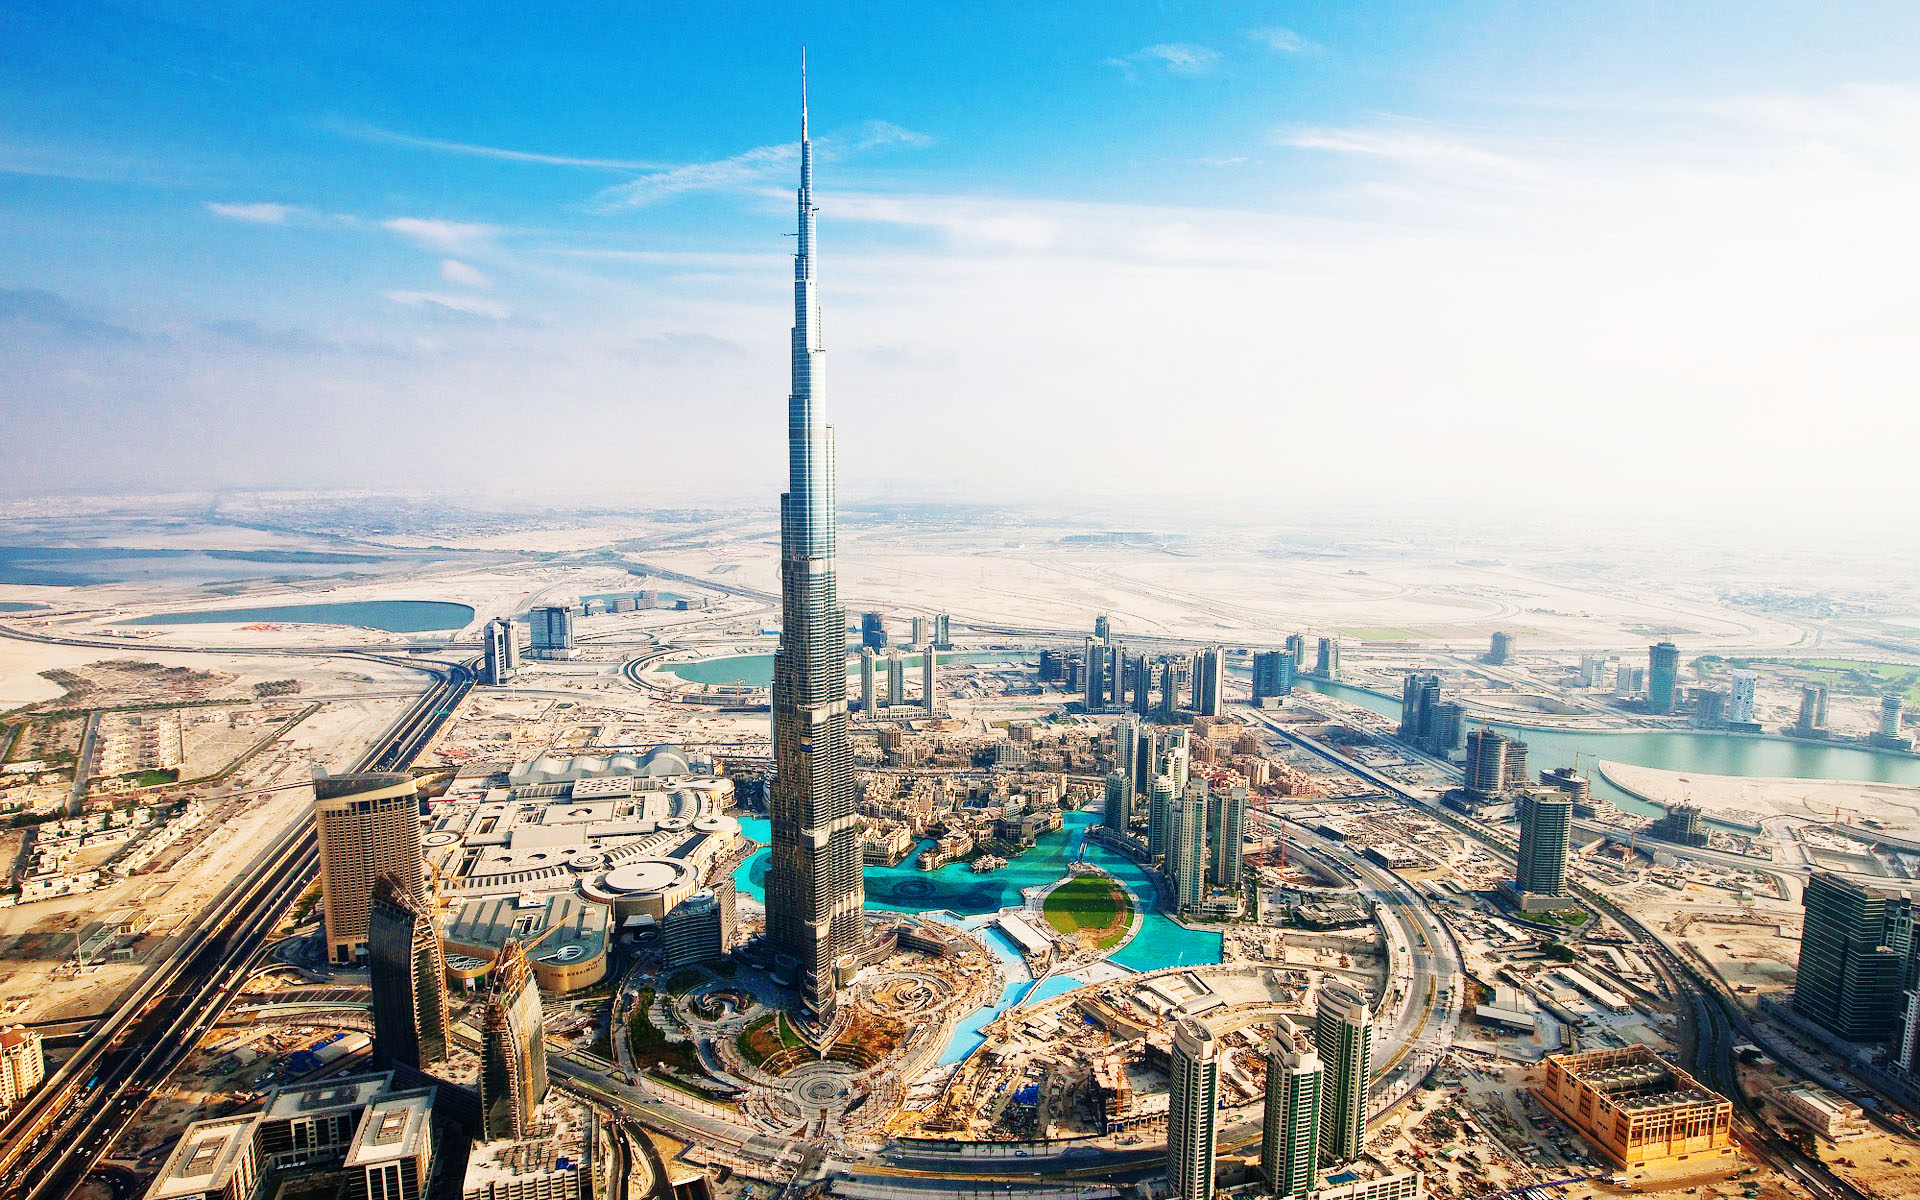 Burj Khalifa: The tallest standing structure in the world ...